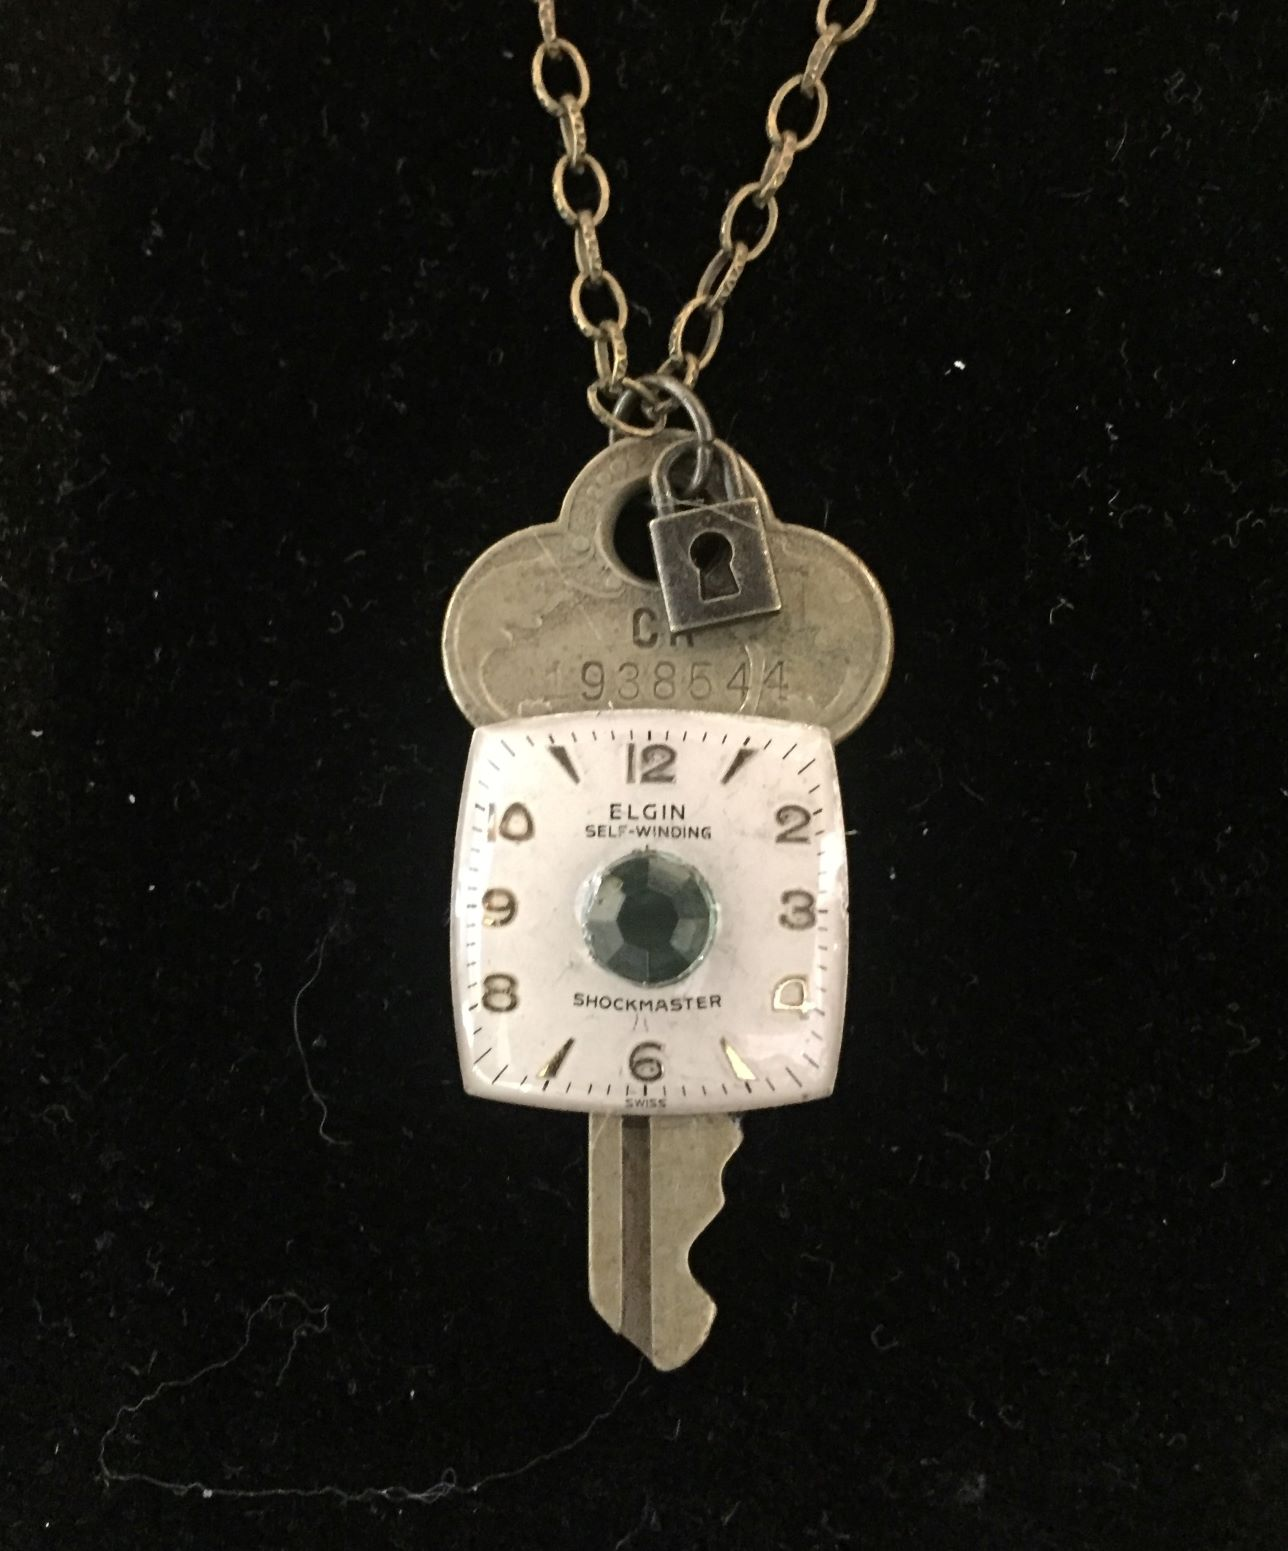 Necklace with Key and Elgin watchface